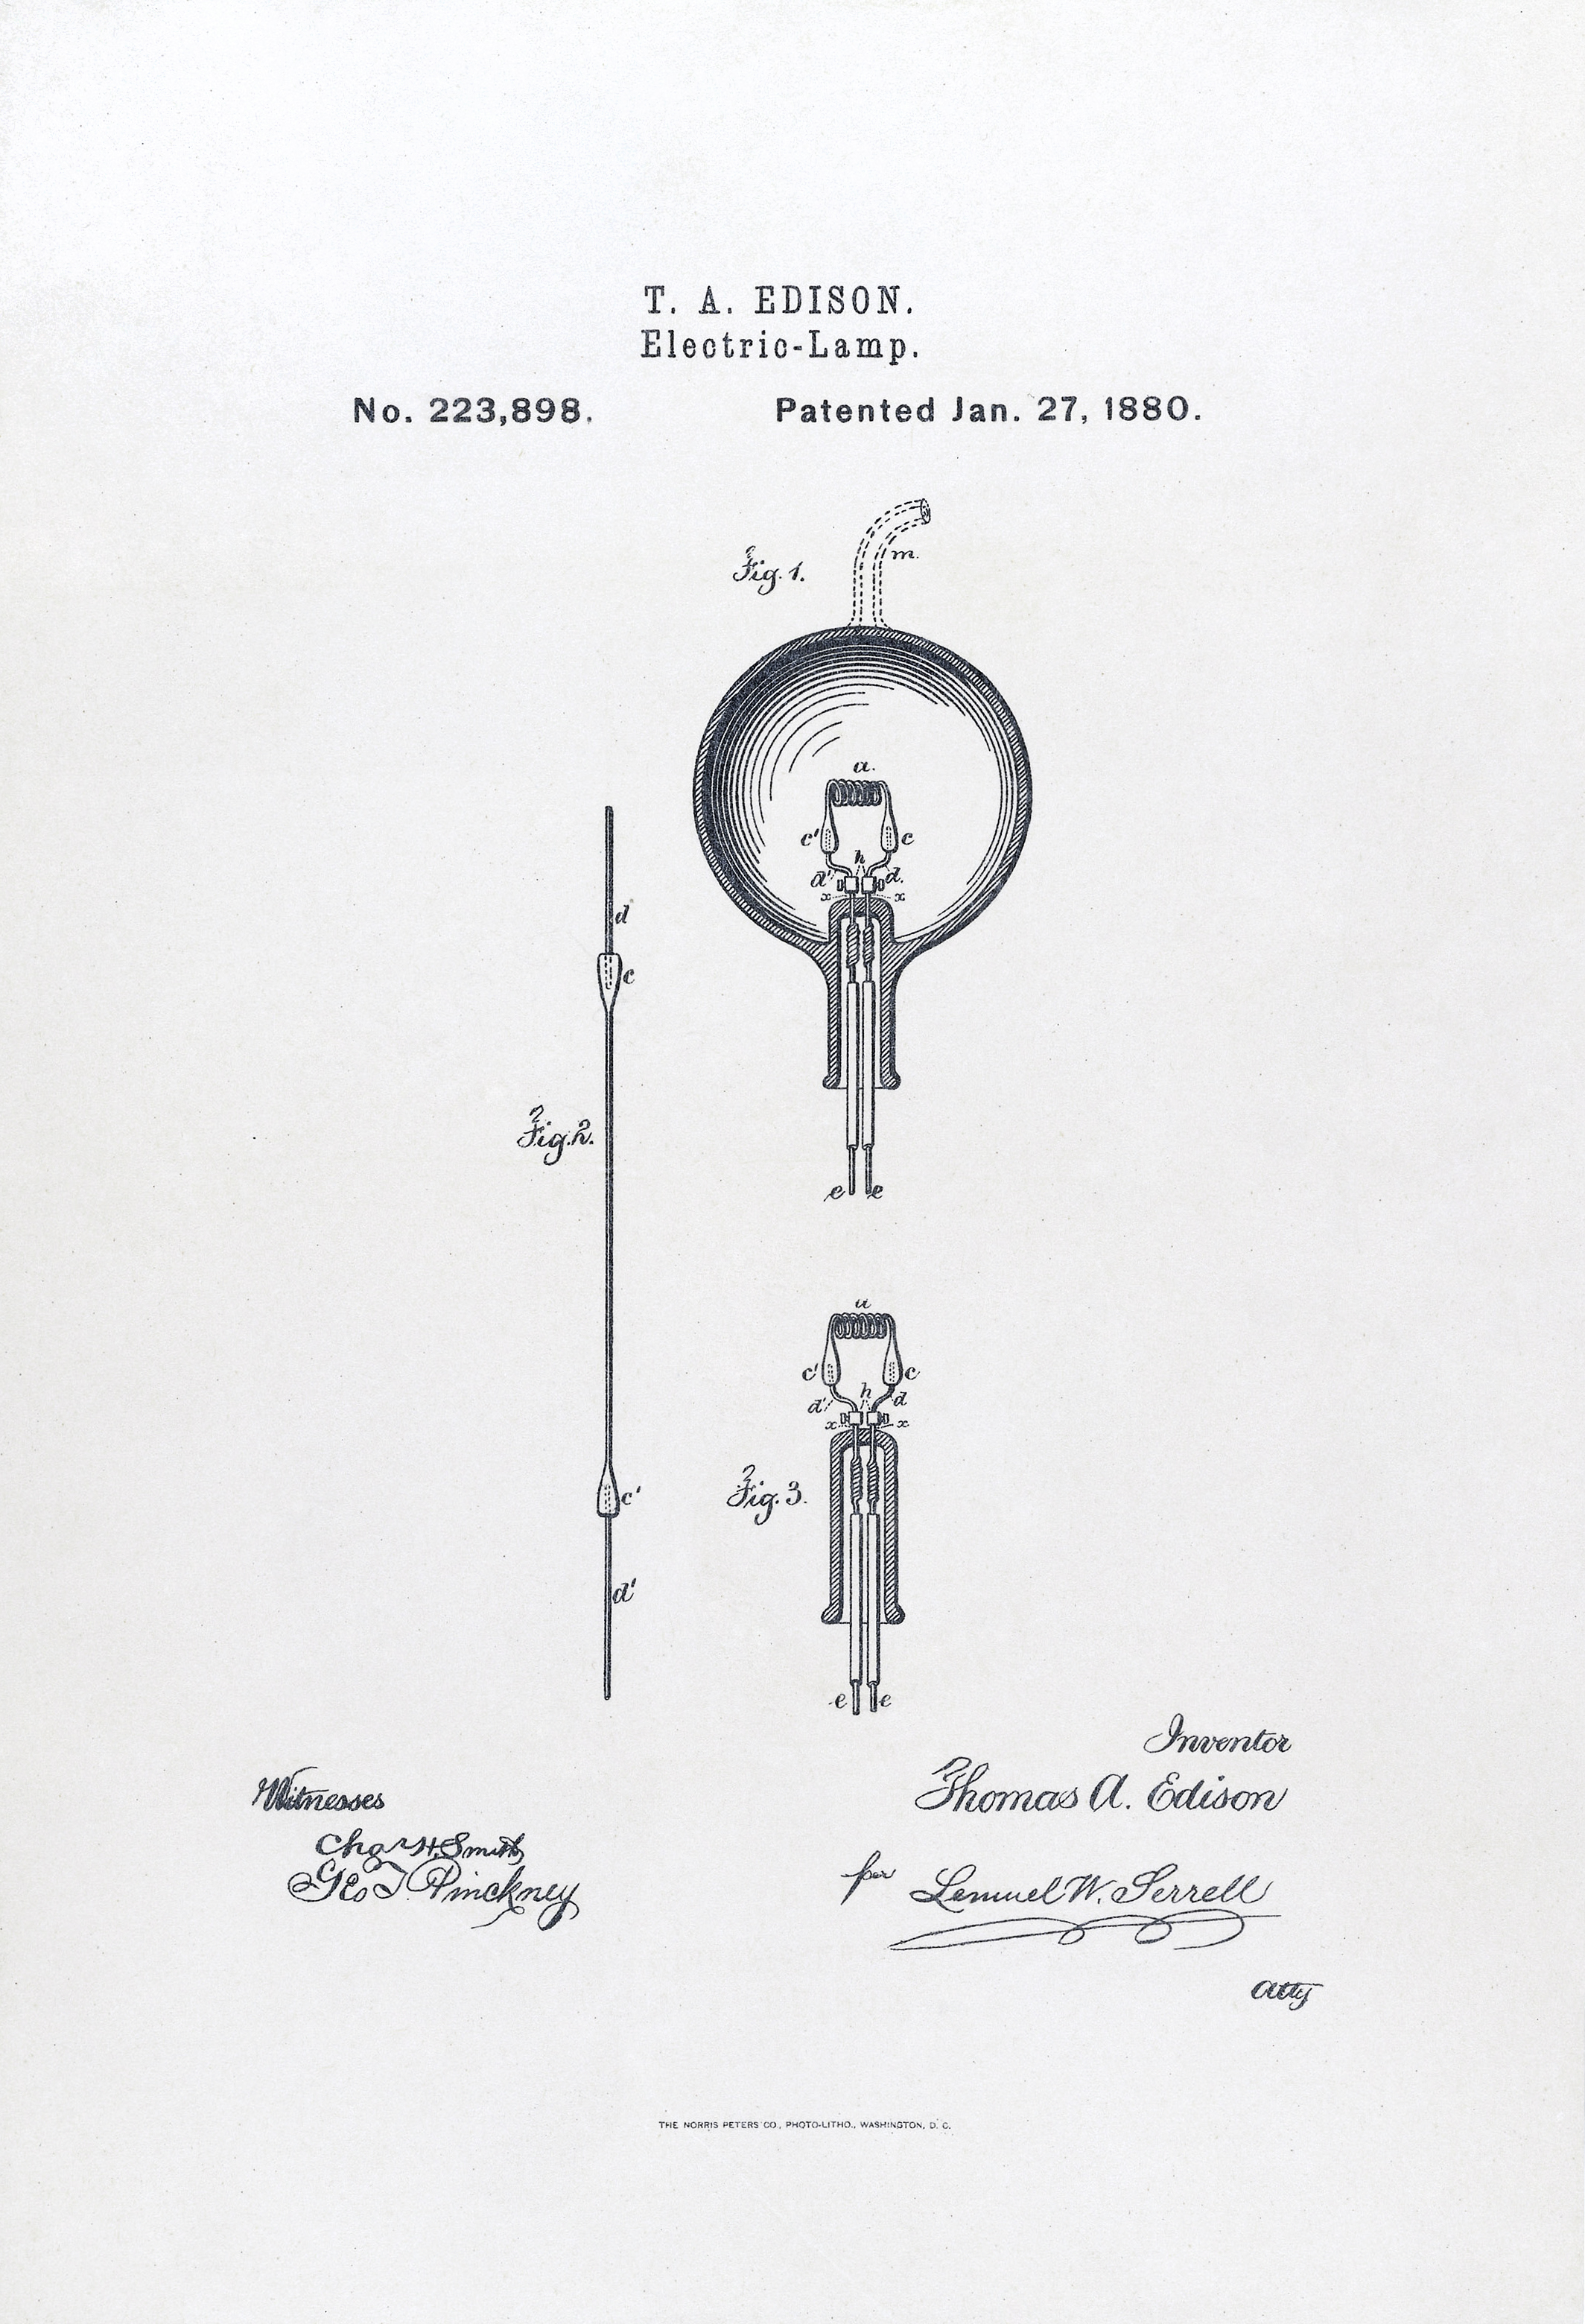 thomas edison light bulb essay Thomas edison's light bulb has been one of the biggest impacts on society even to this day thomas wanted to replace the gaslight with a mild, safe, and inexpensive electric light edison invented the light bulb in 1879, and to this day the light bulb is still just as useful, if not more so.